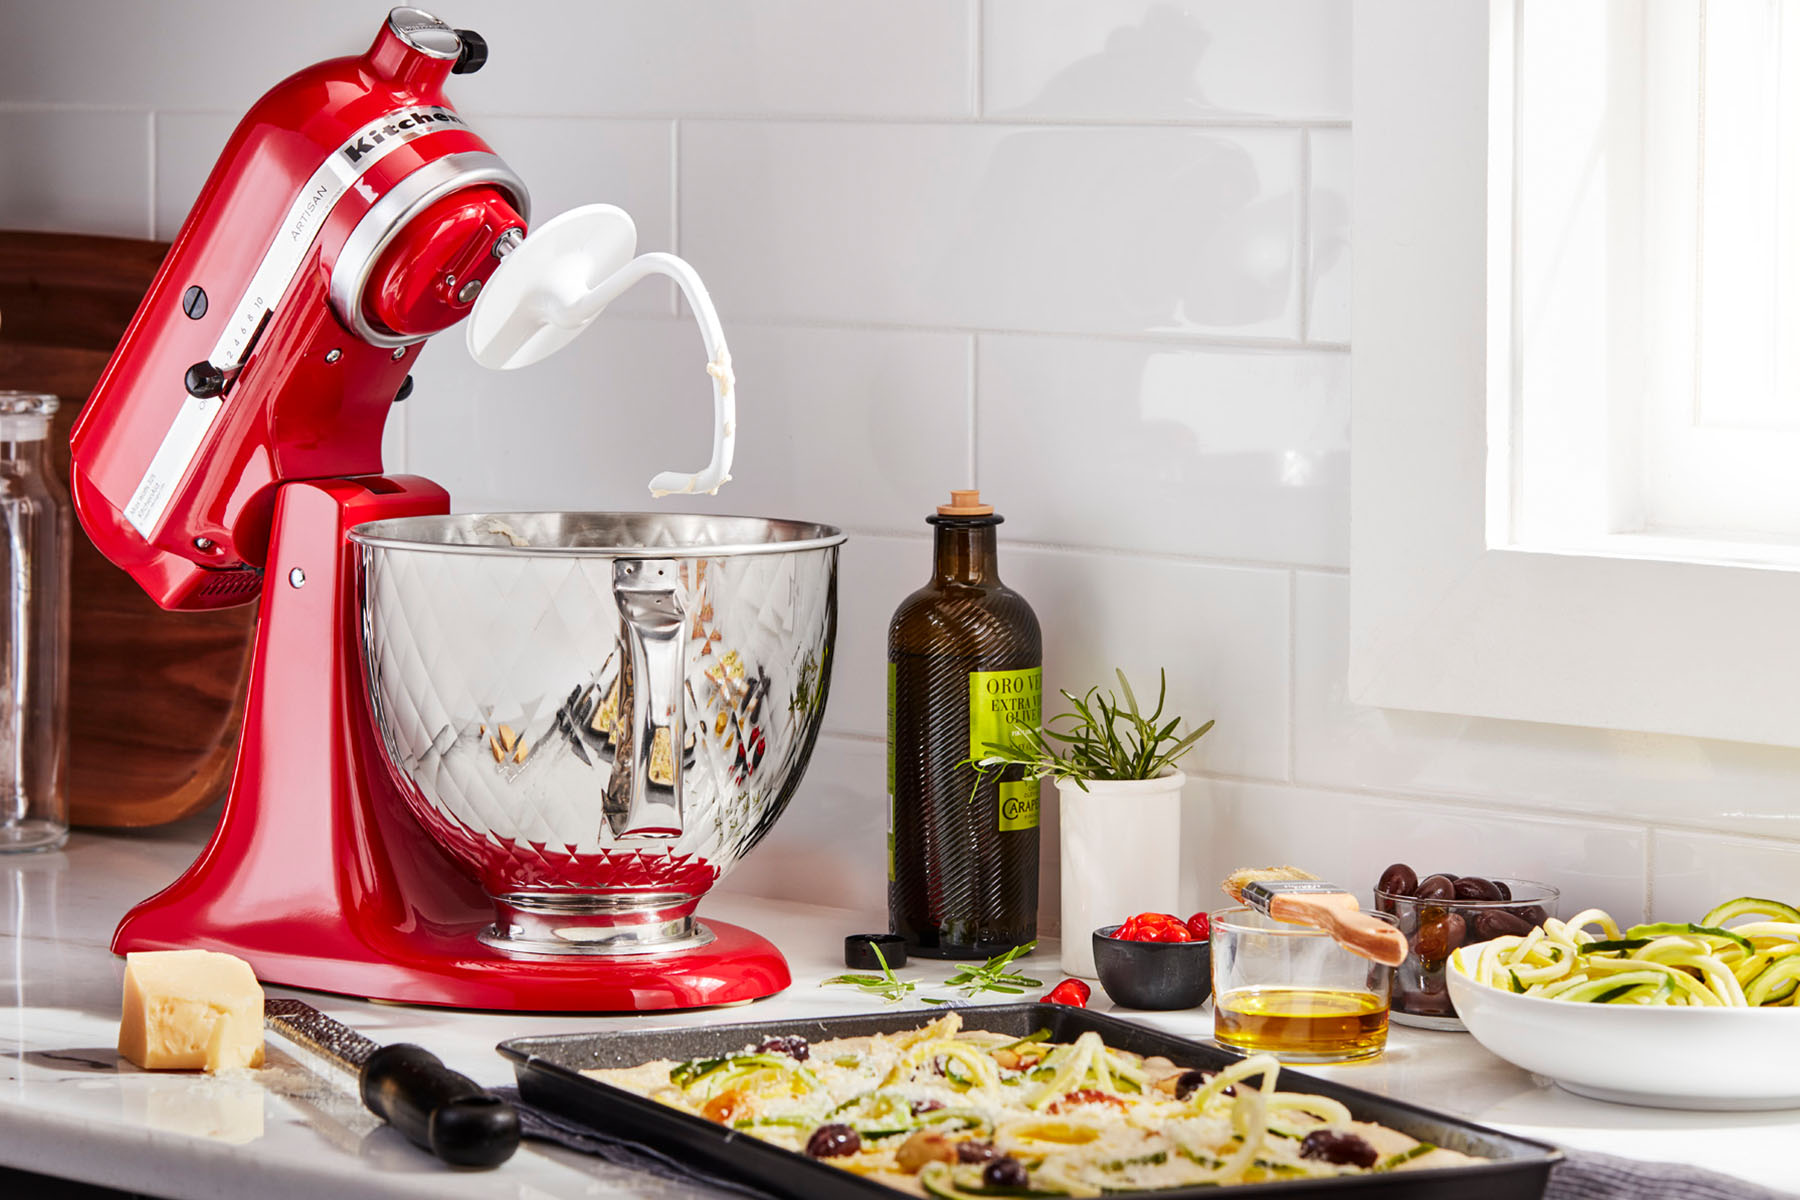 You Can Now Engrave Personalized Messages on KitchenAid Stand Mixers